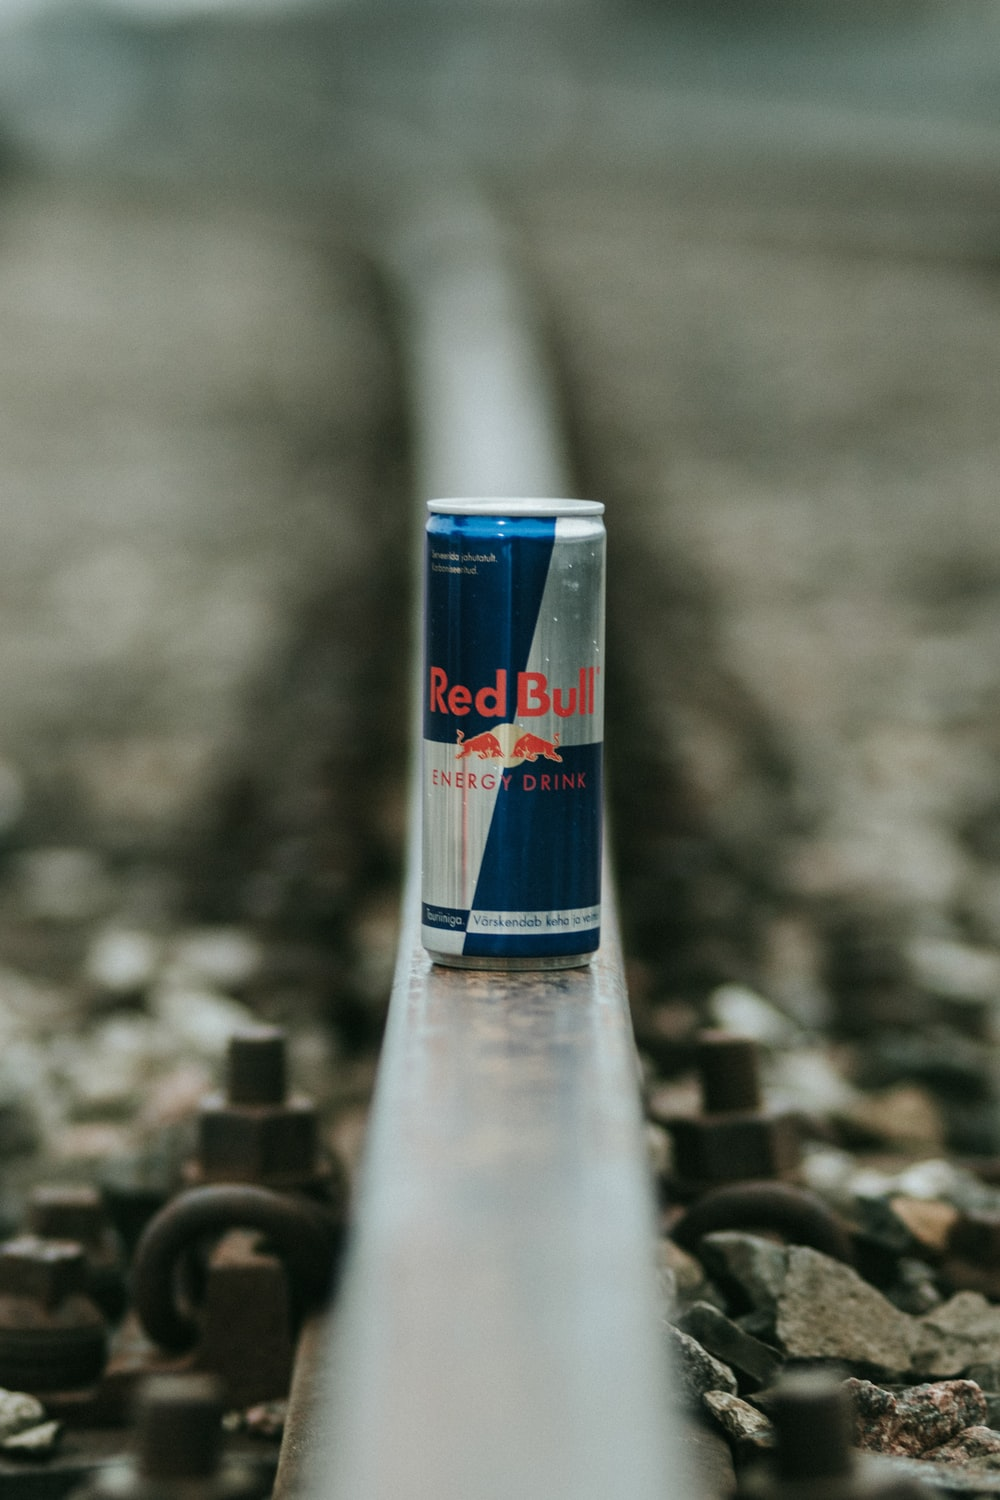 blue and grey Red Bull energy drink can